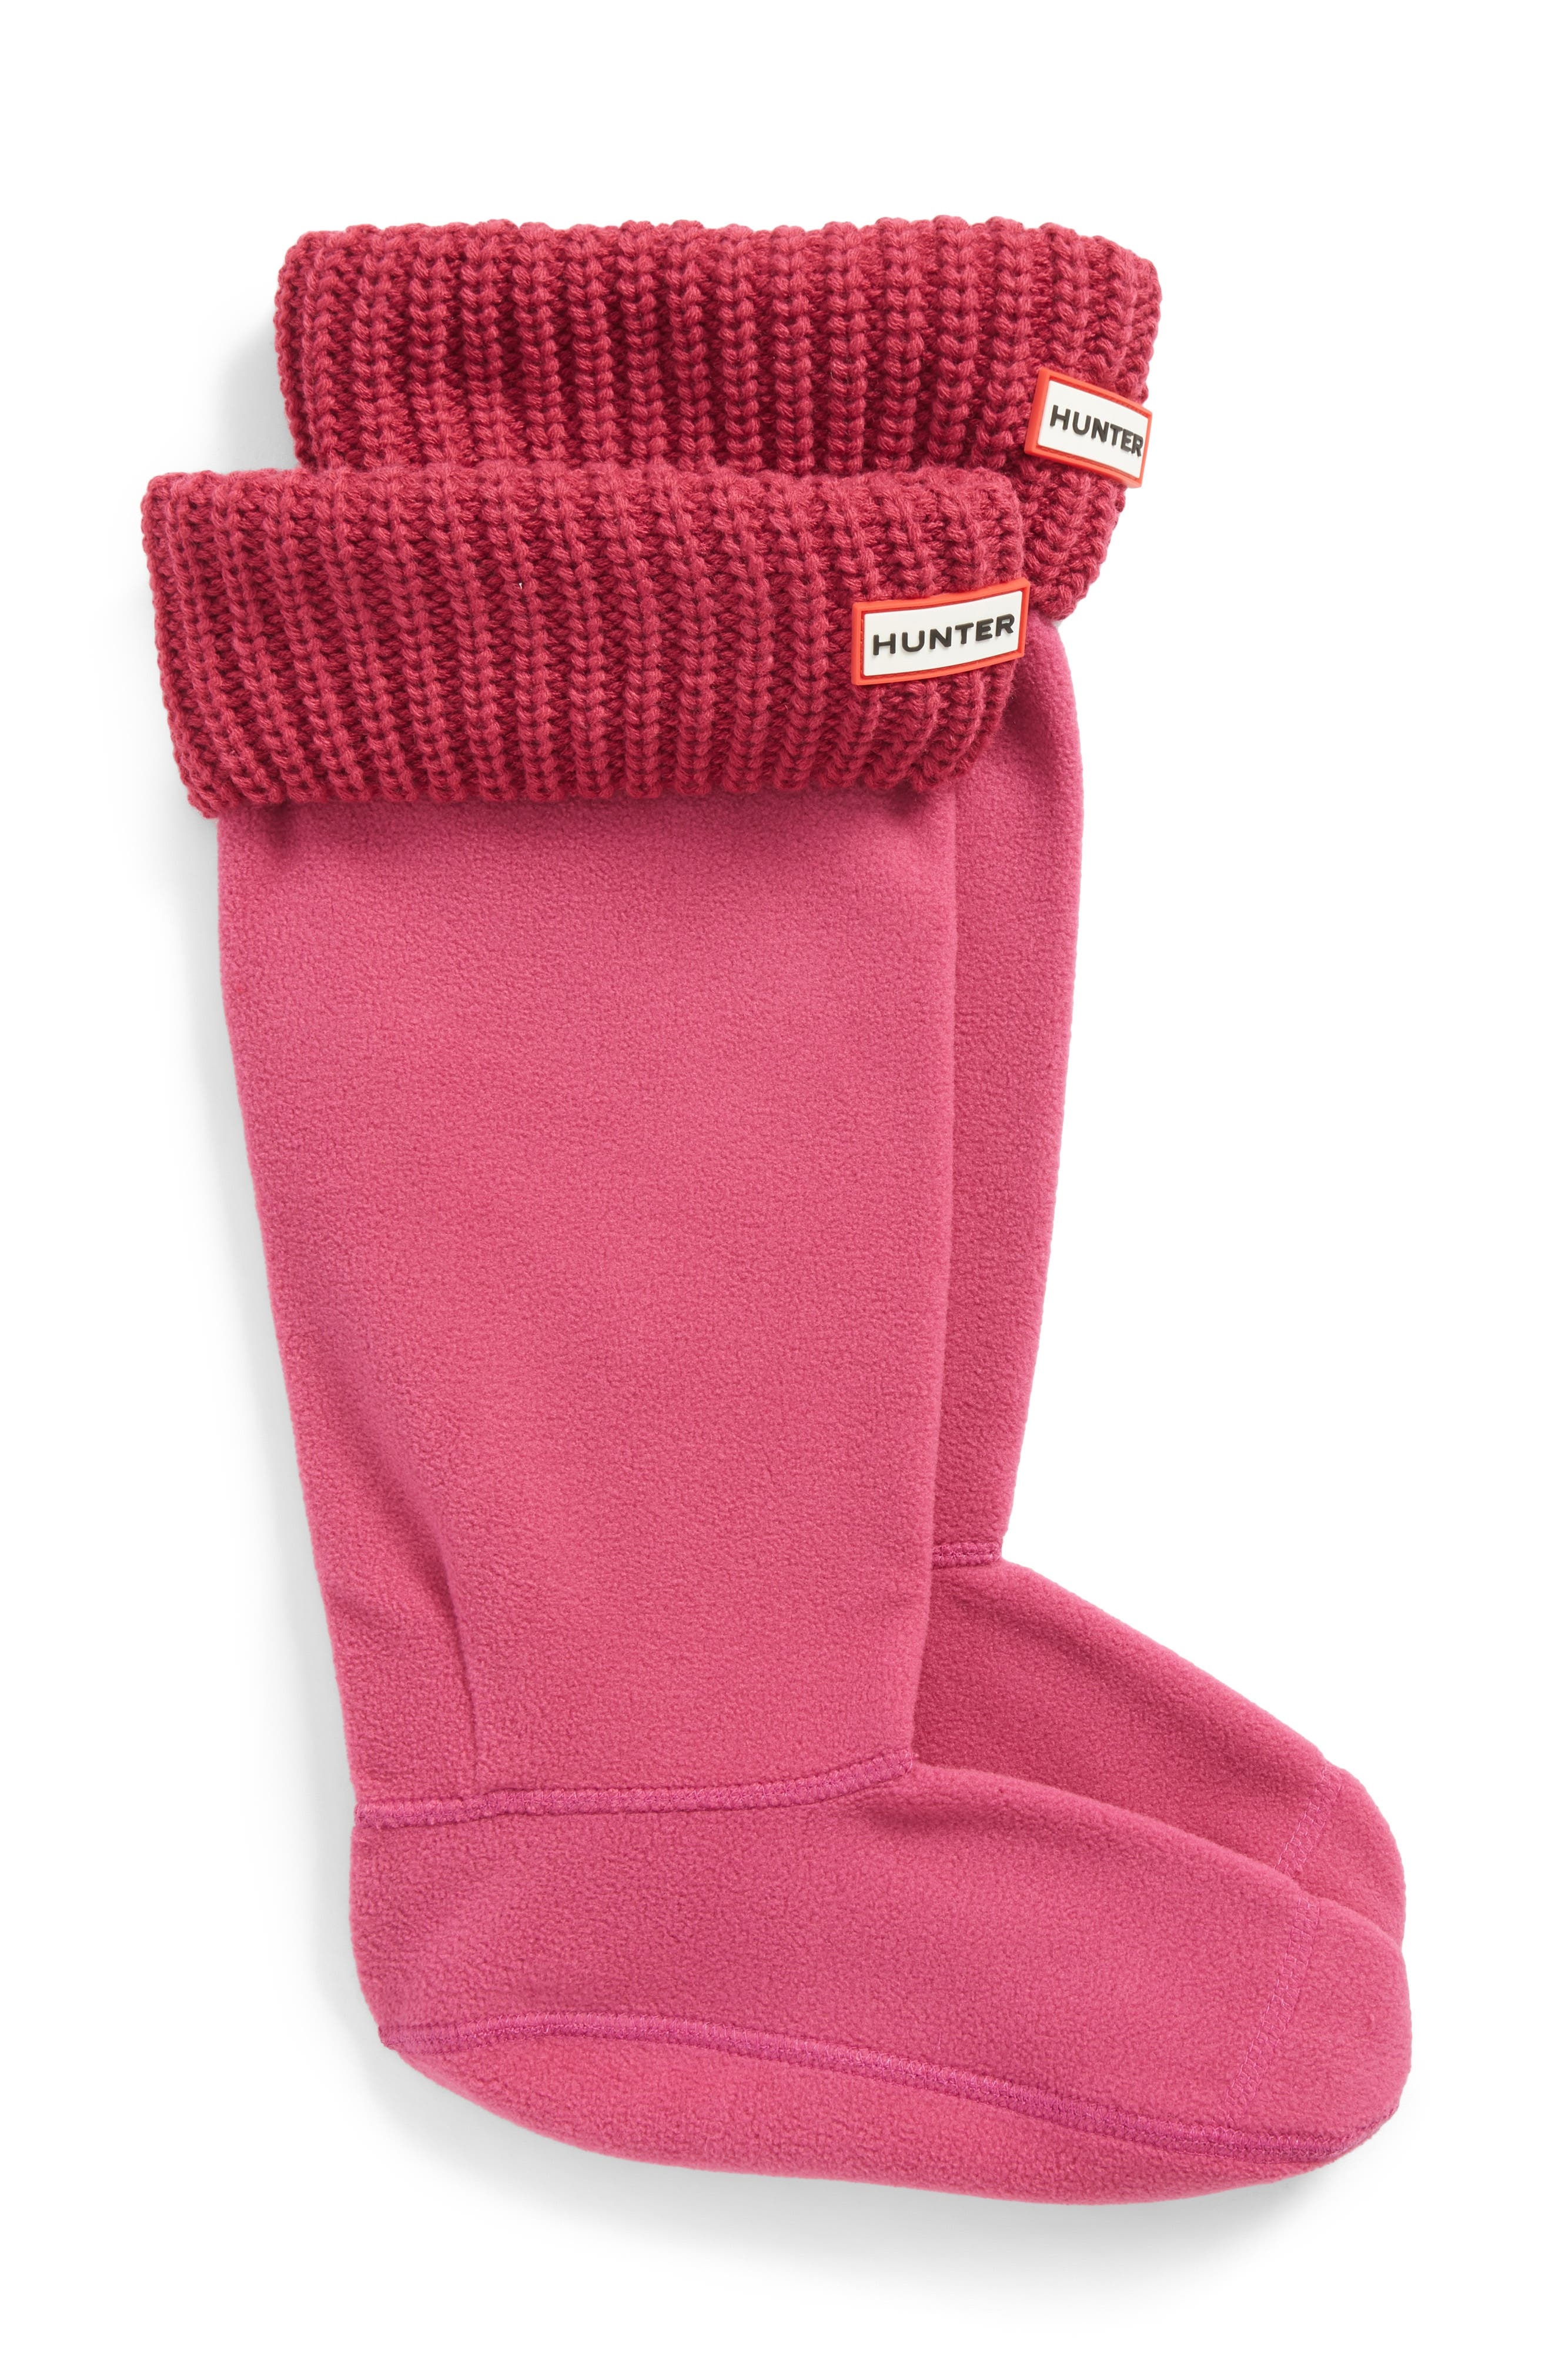 Tall Cardigan Knit Cuff Welly Boot Socks,                             Main thumbnail 1, color,                             Dark Ion Pink